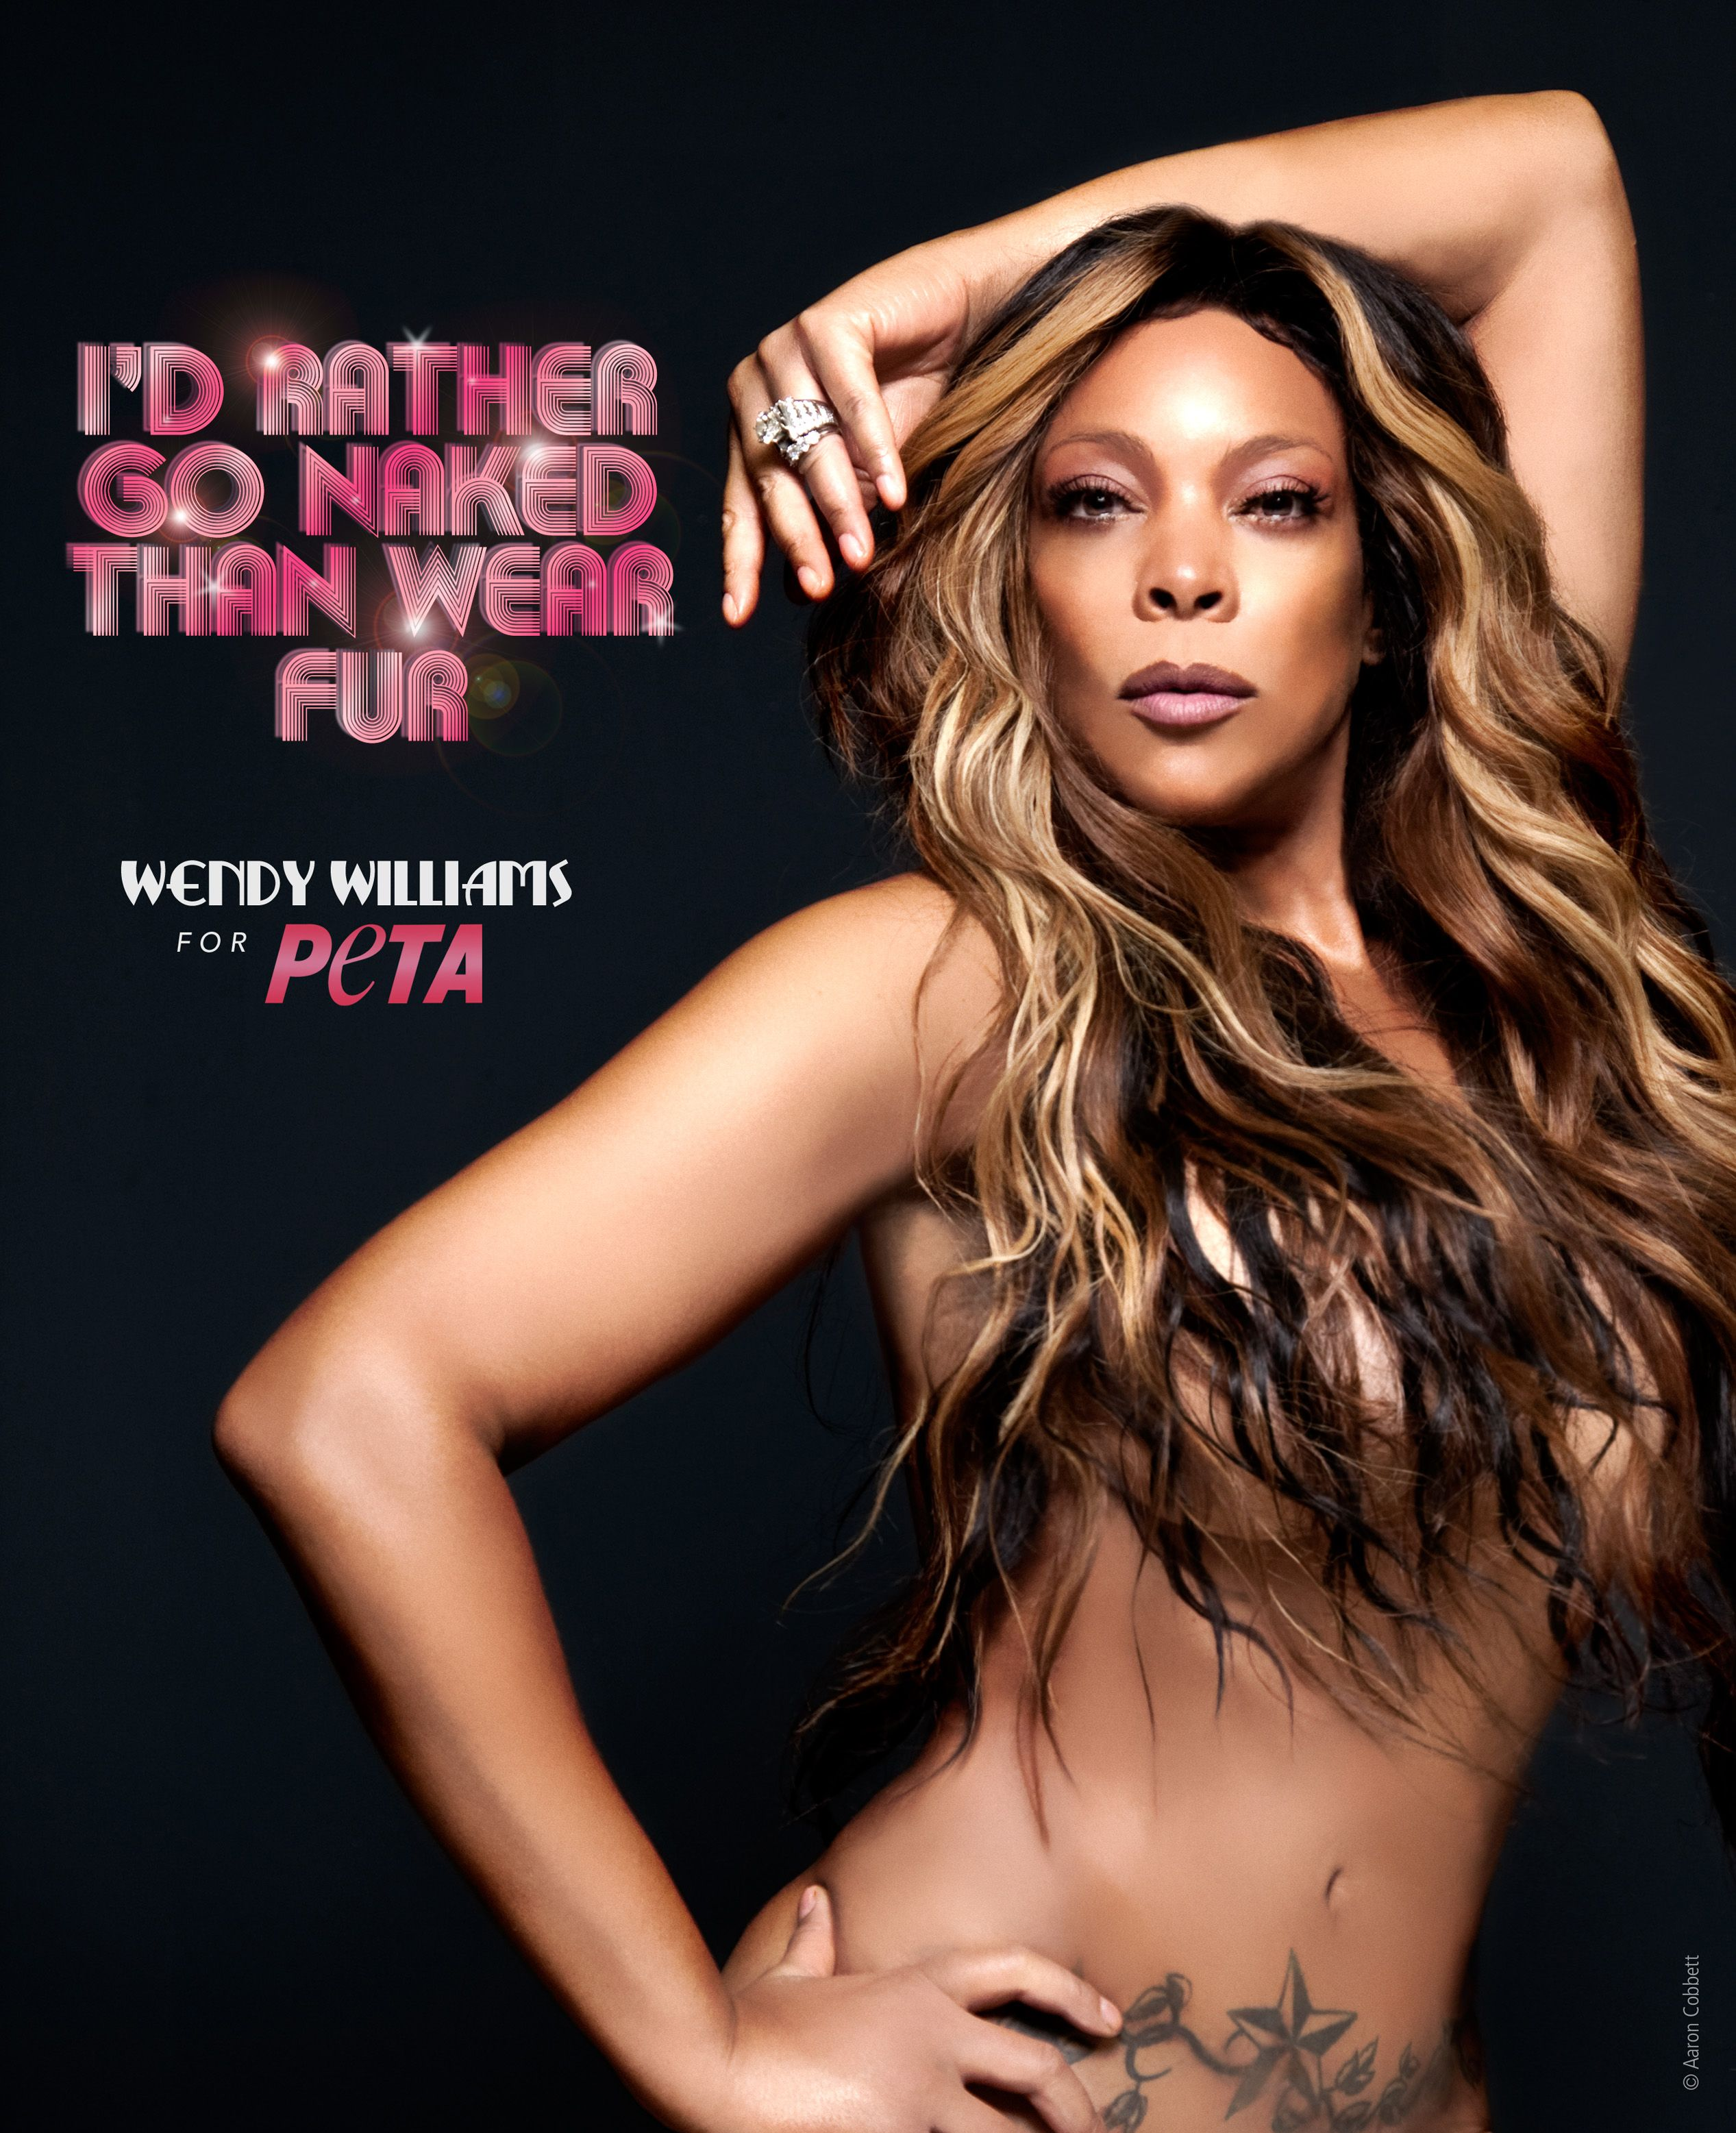 wendy williams goes naked for peta - Wendy Williams Wedding Ring